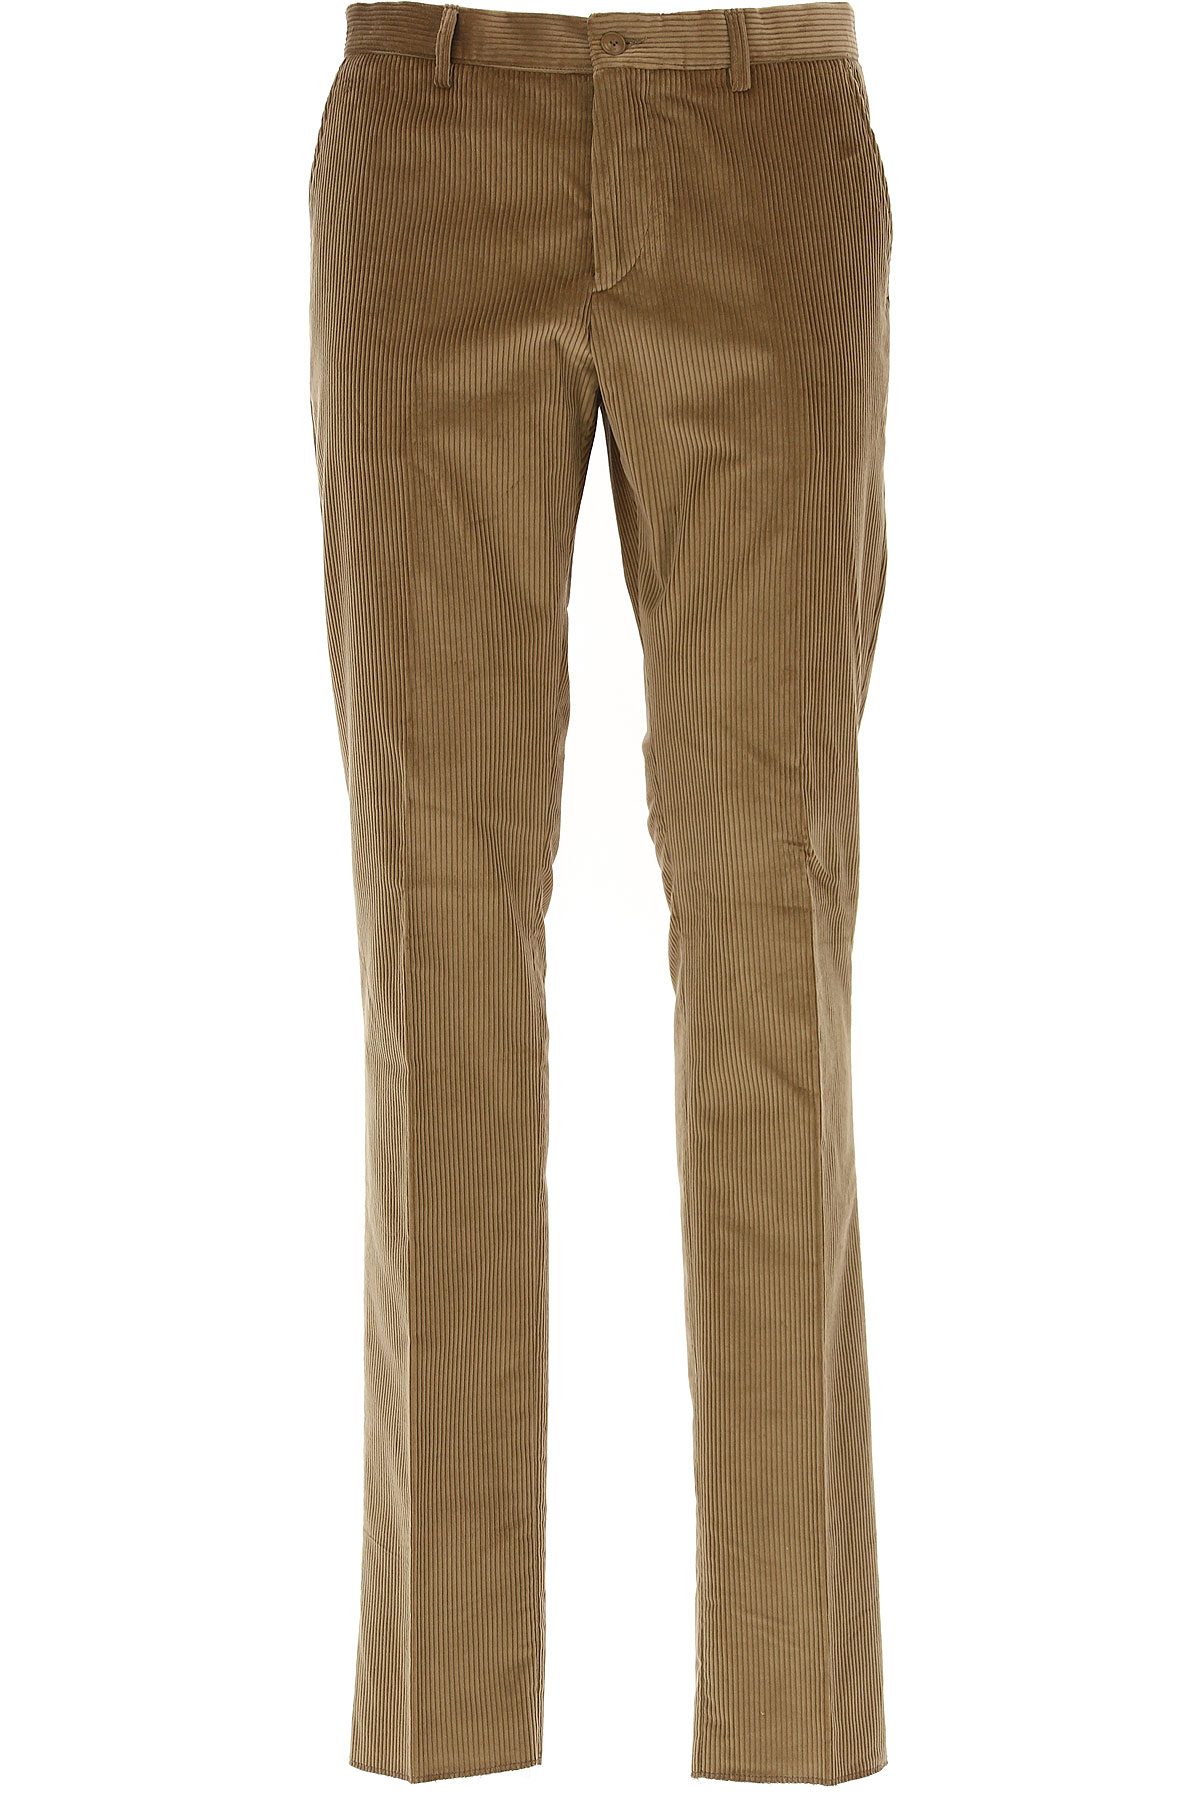 Etro Pants for Men On Sale, Biscuit, Cotton, 2017, 32 34 36